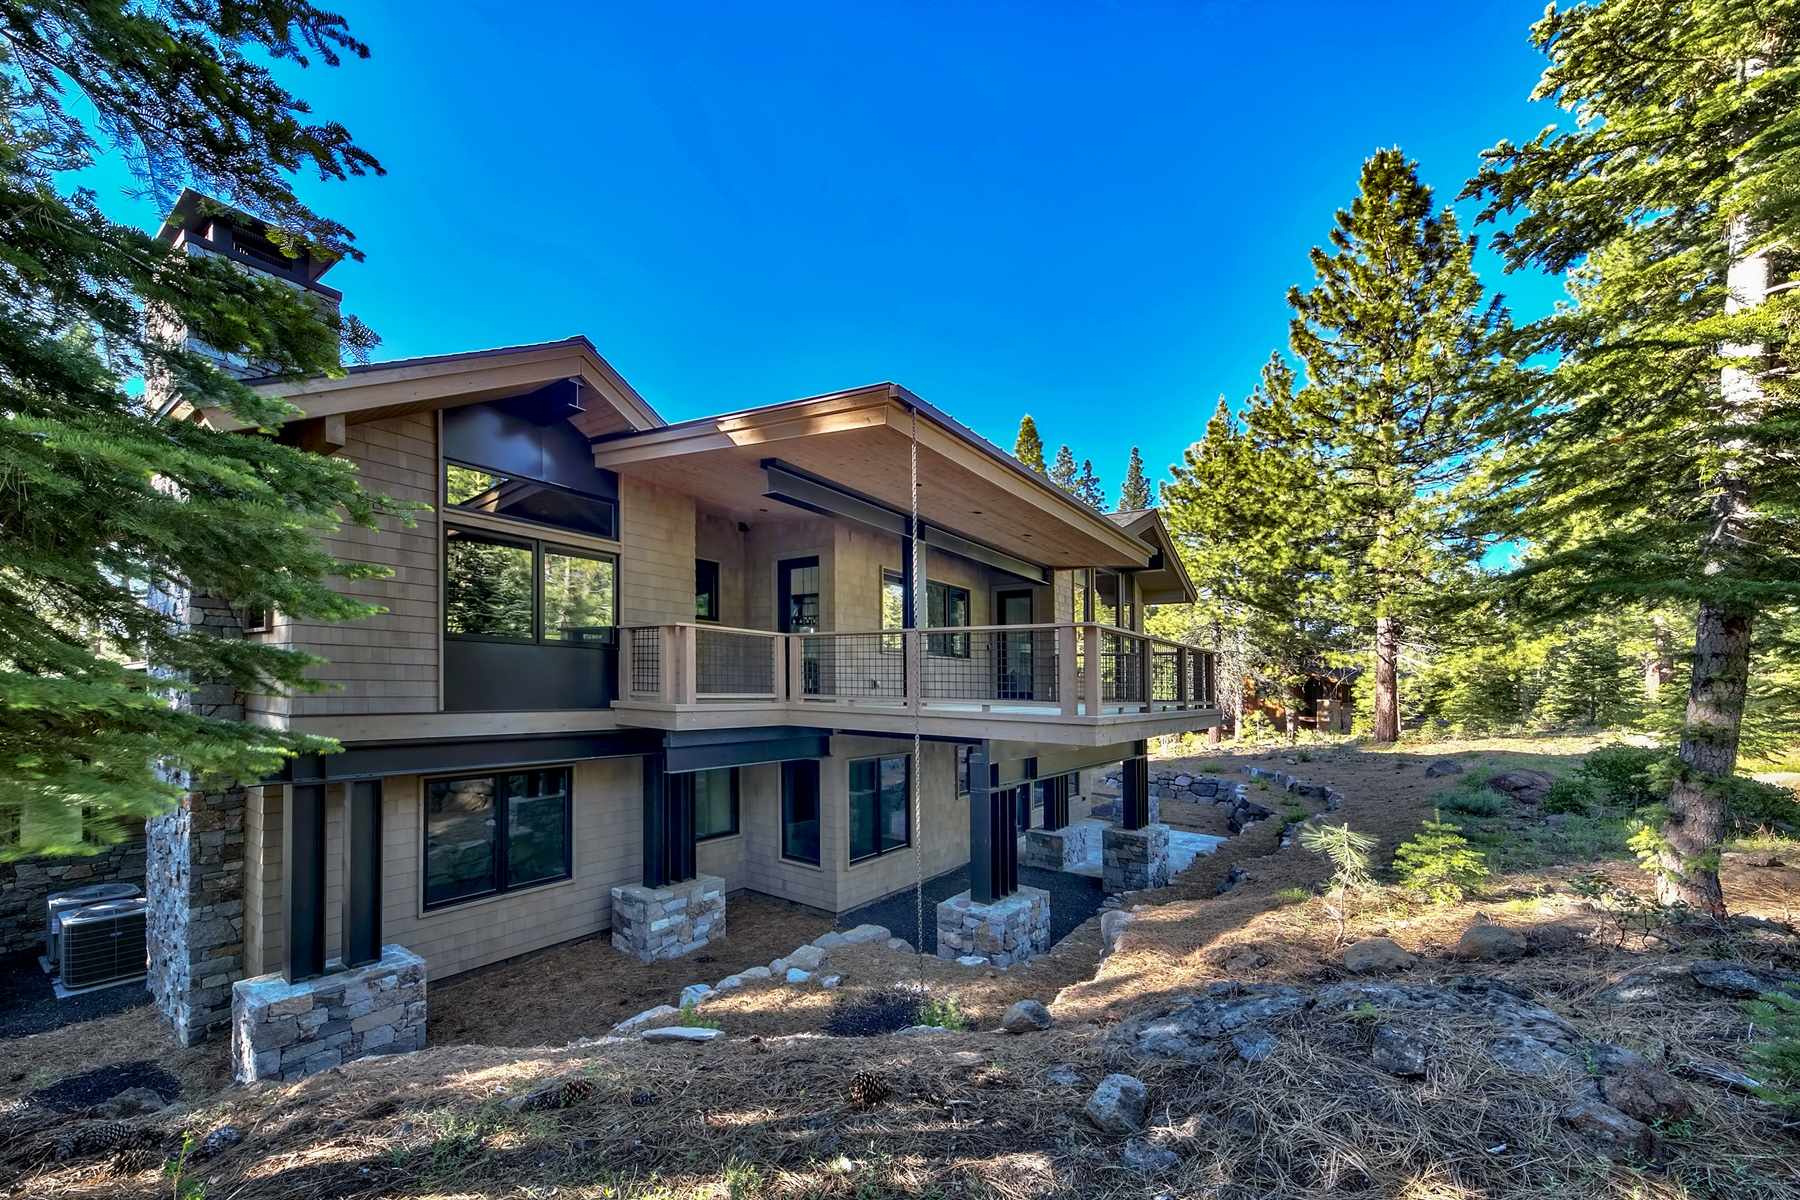 Additional photo for property listing at 13212 Snowshoe Thompson, Truckee, CA 13212 Snowshoe Thompson Circle Truckee, California 96161 United States